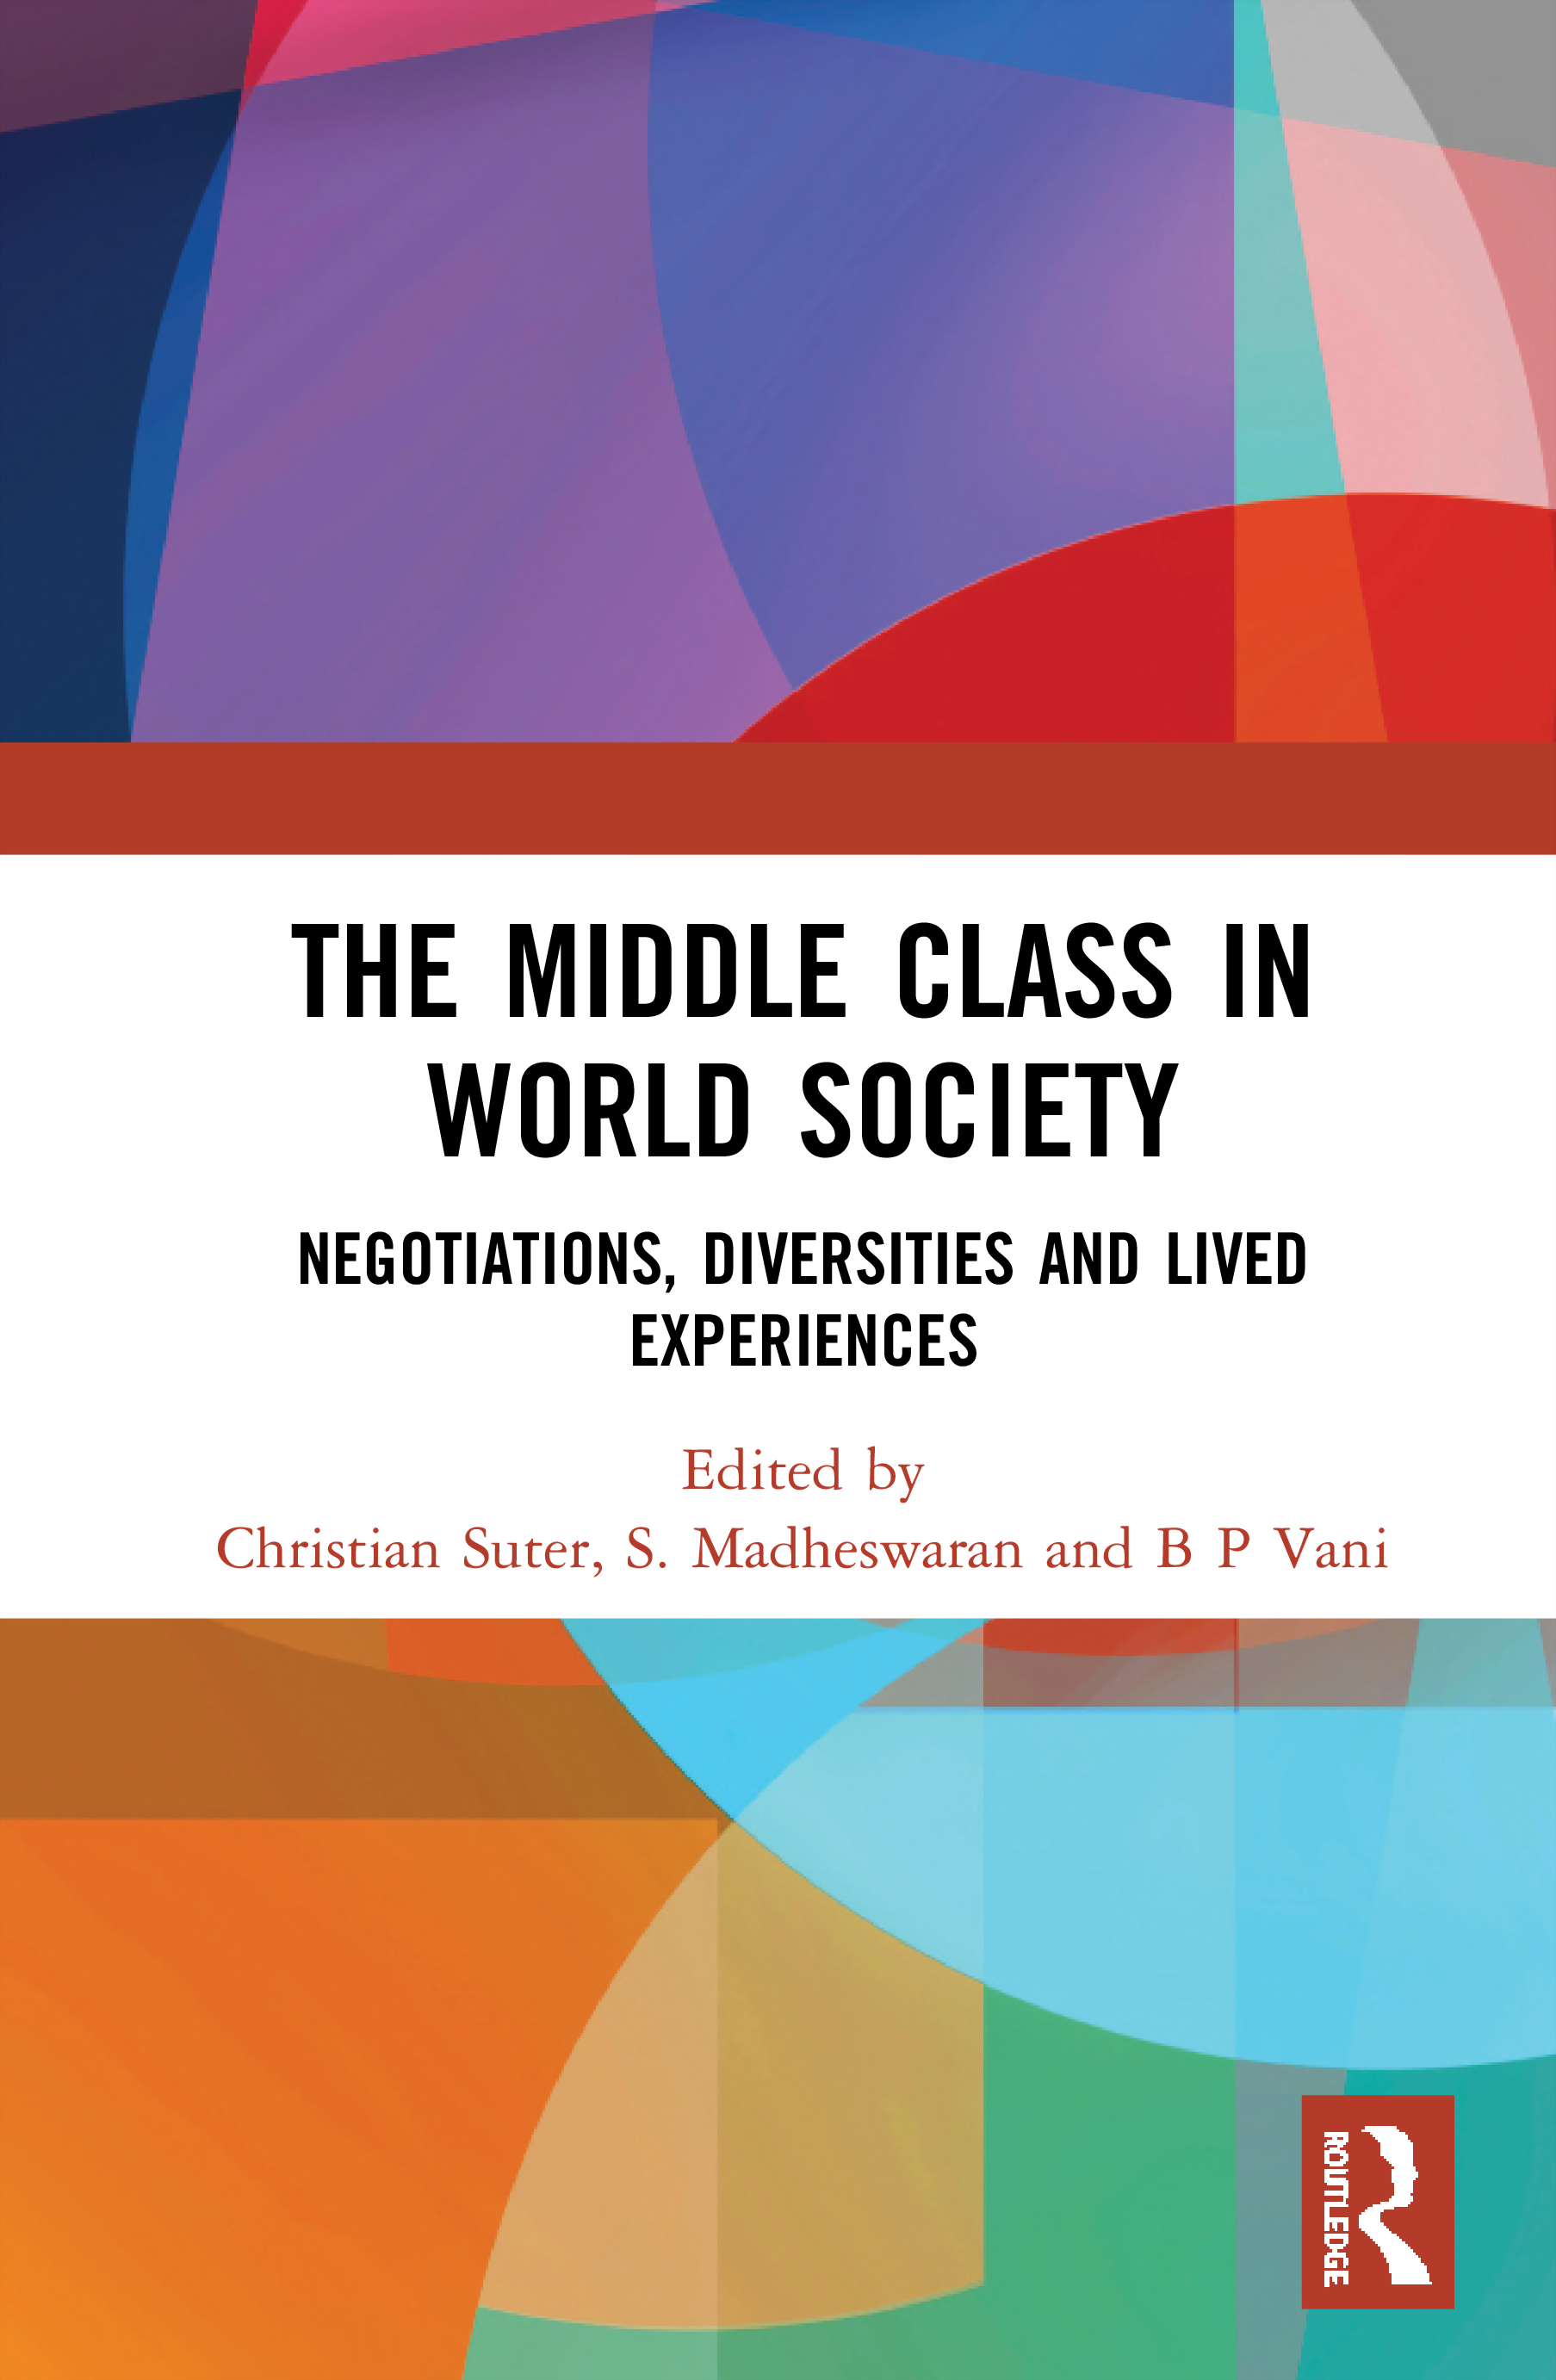 The Middle Class in World Society: Negotiations, Diversities and Lived Experiences book cover